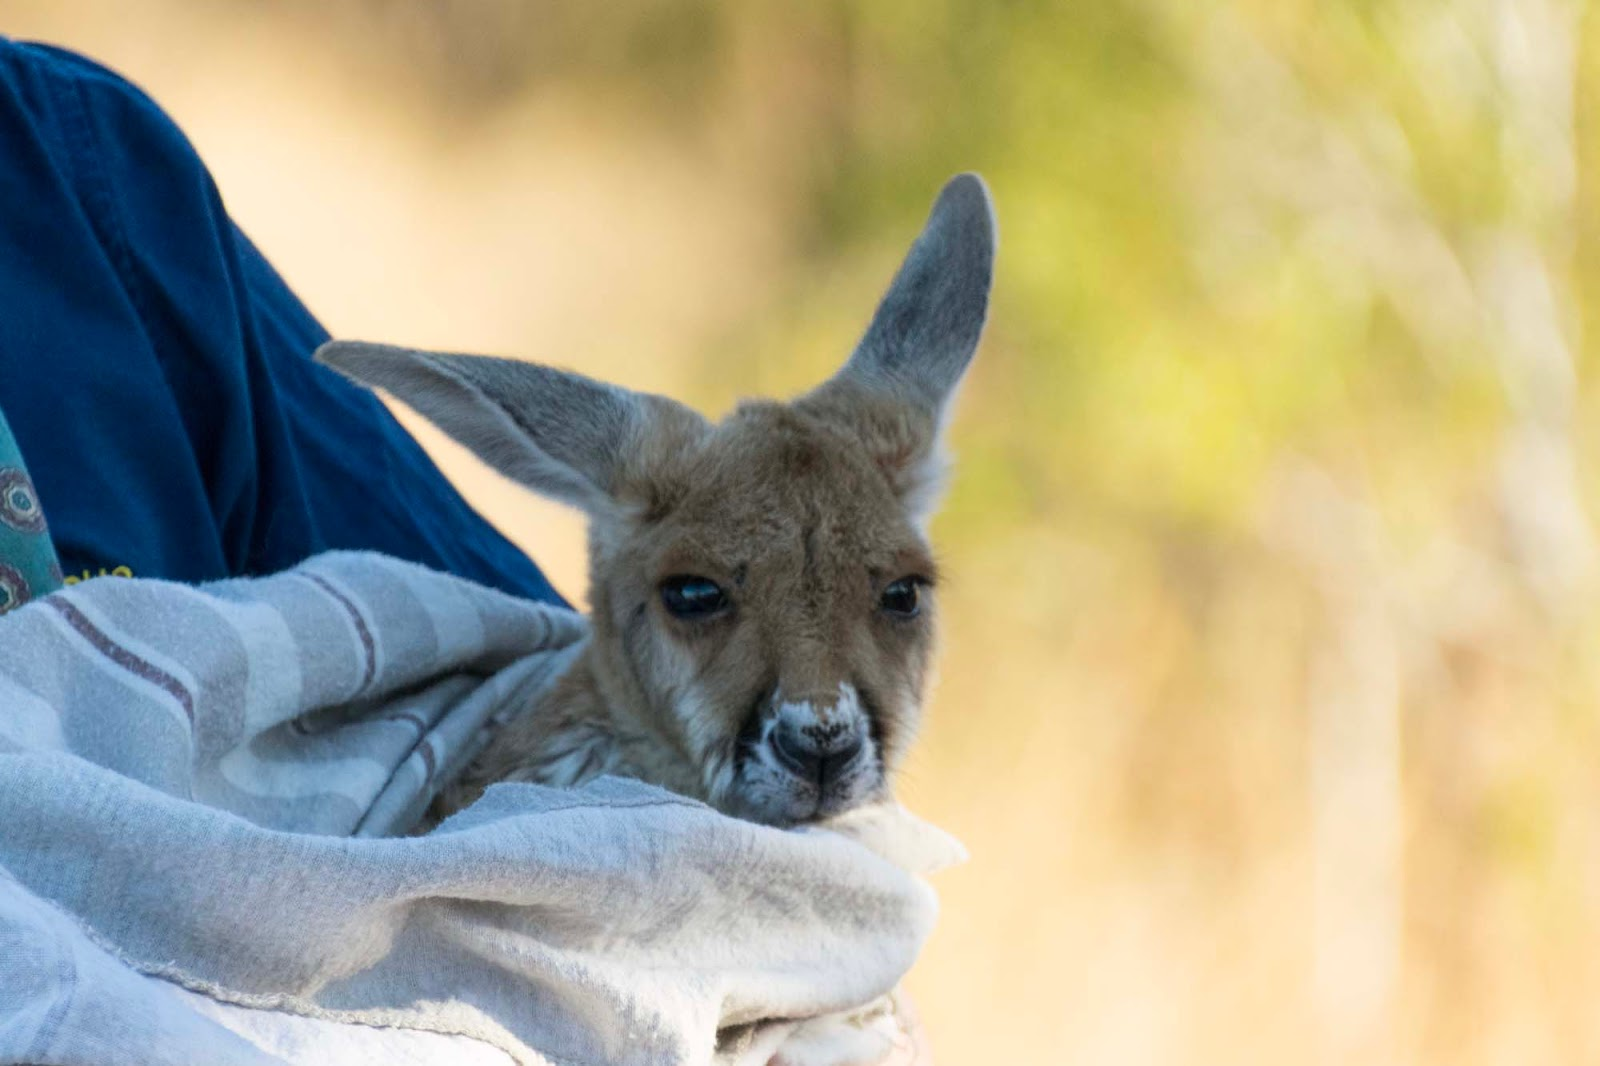 baby joey at the kangaroo sanctuary